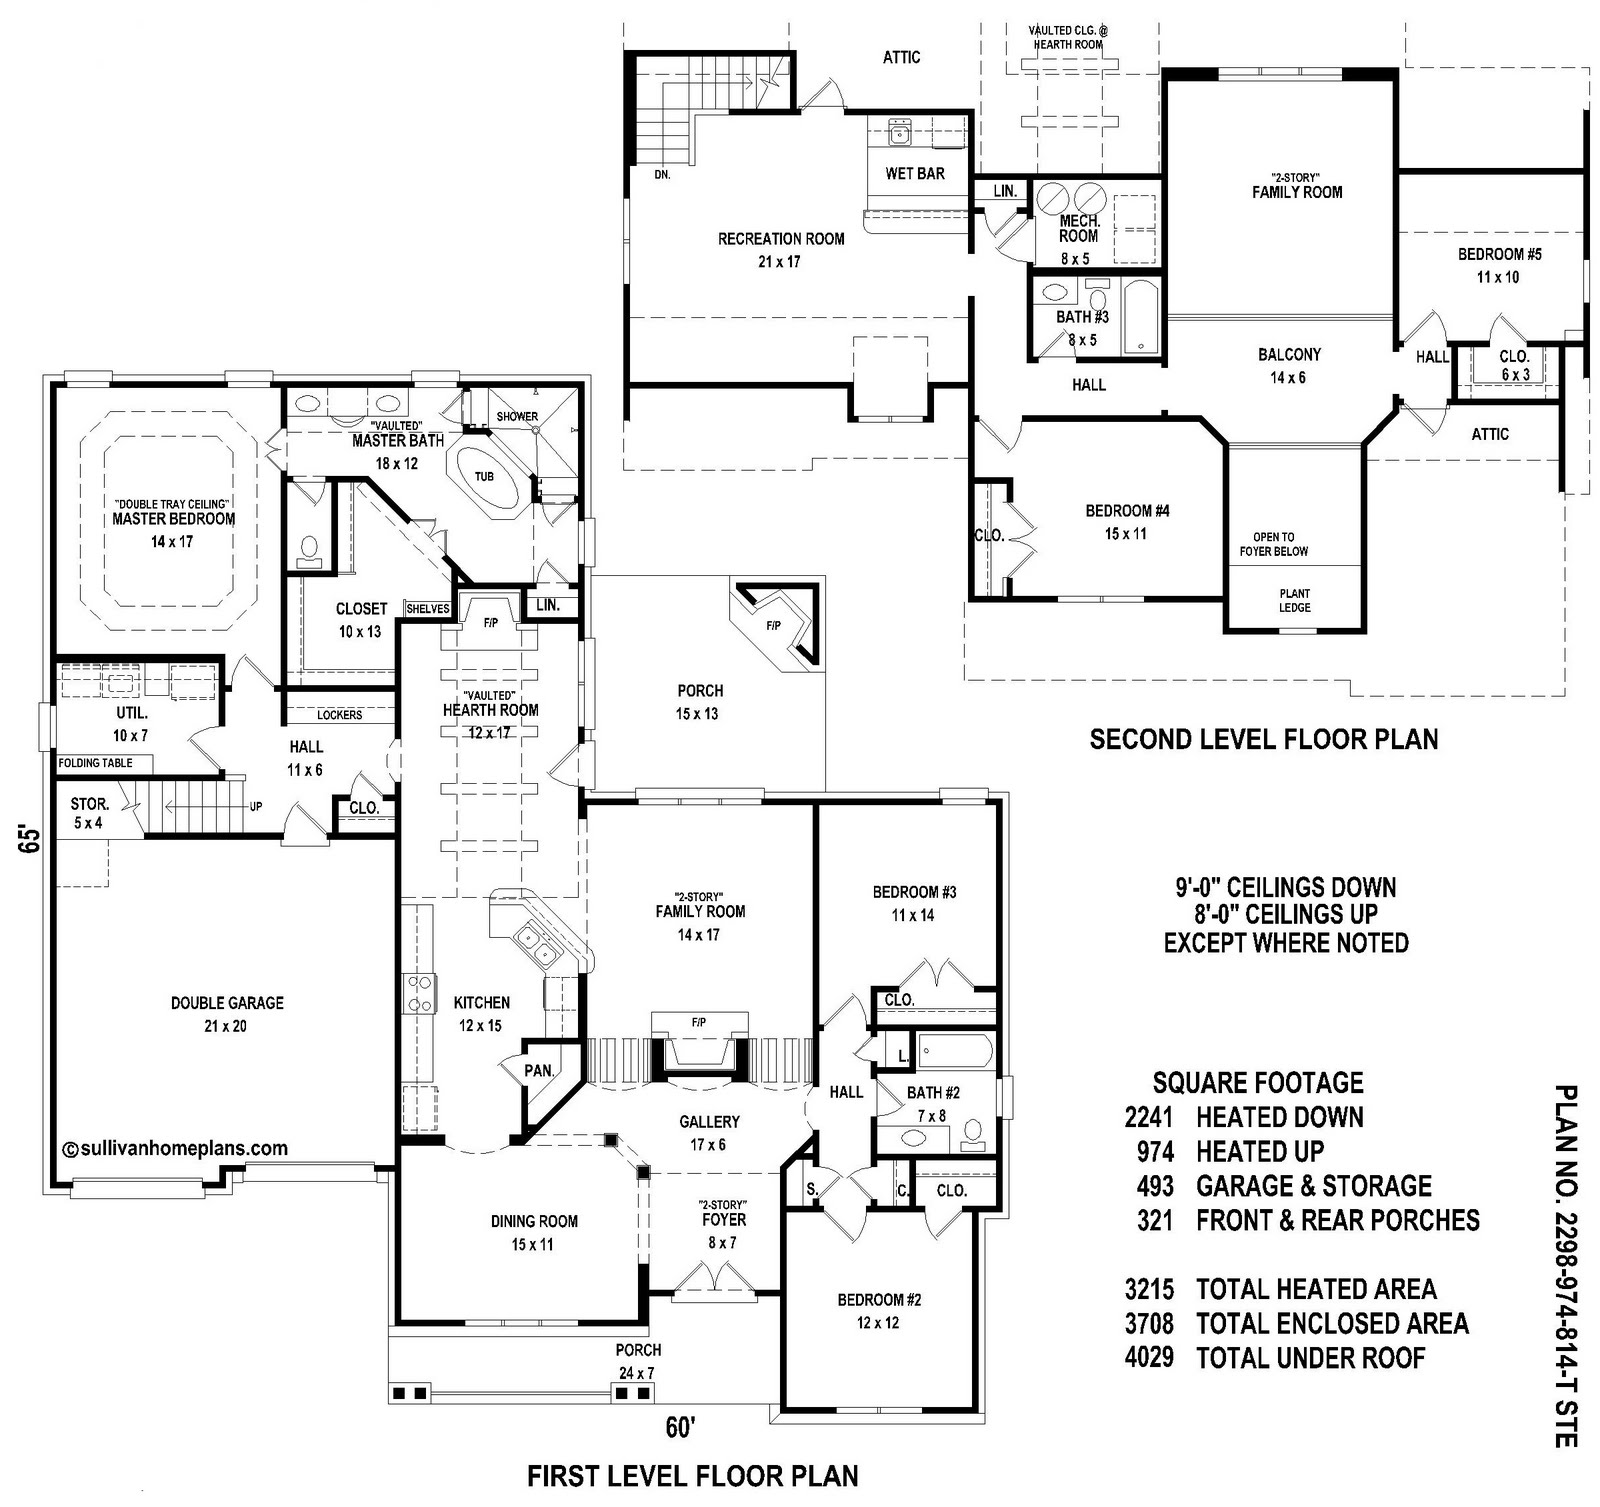 Sullivan home plans june 2010 for 5 bedroom house plans